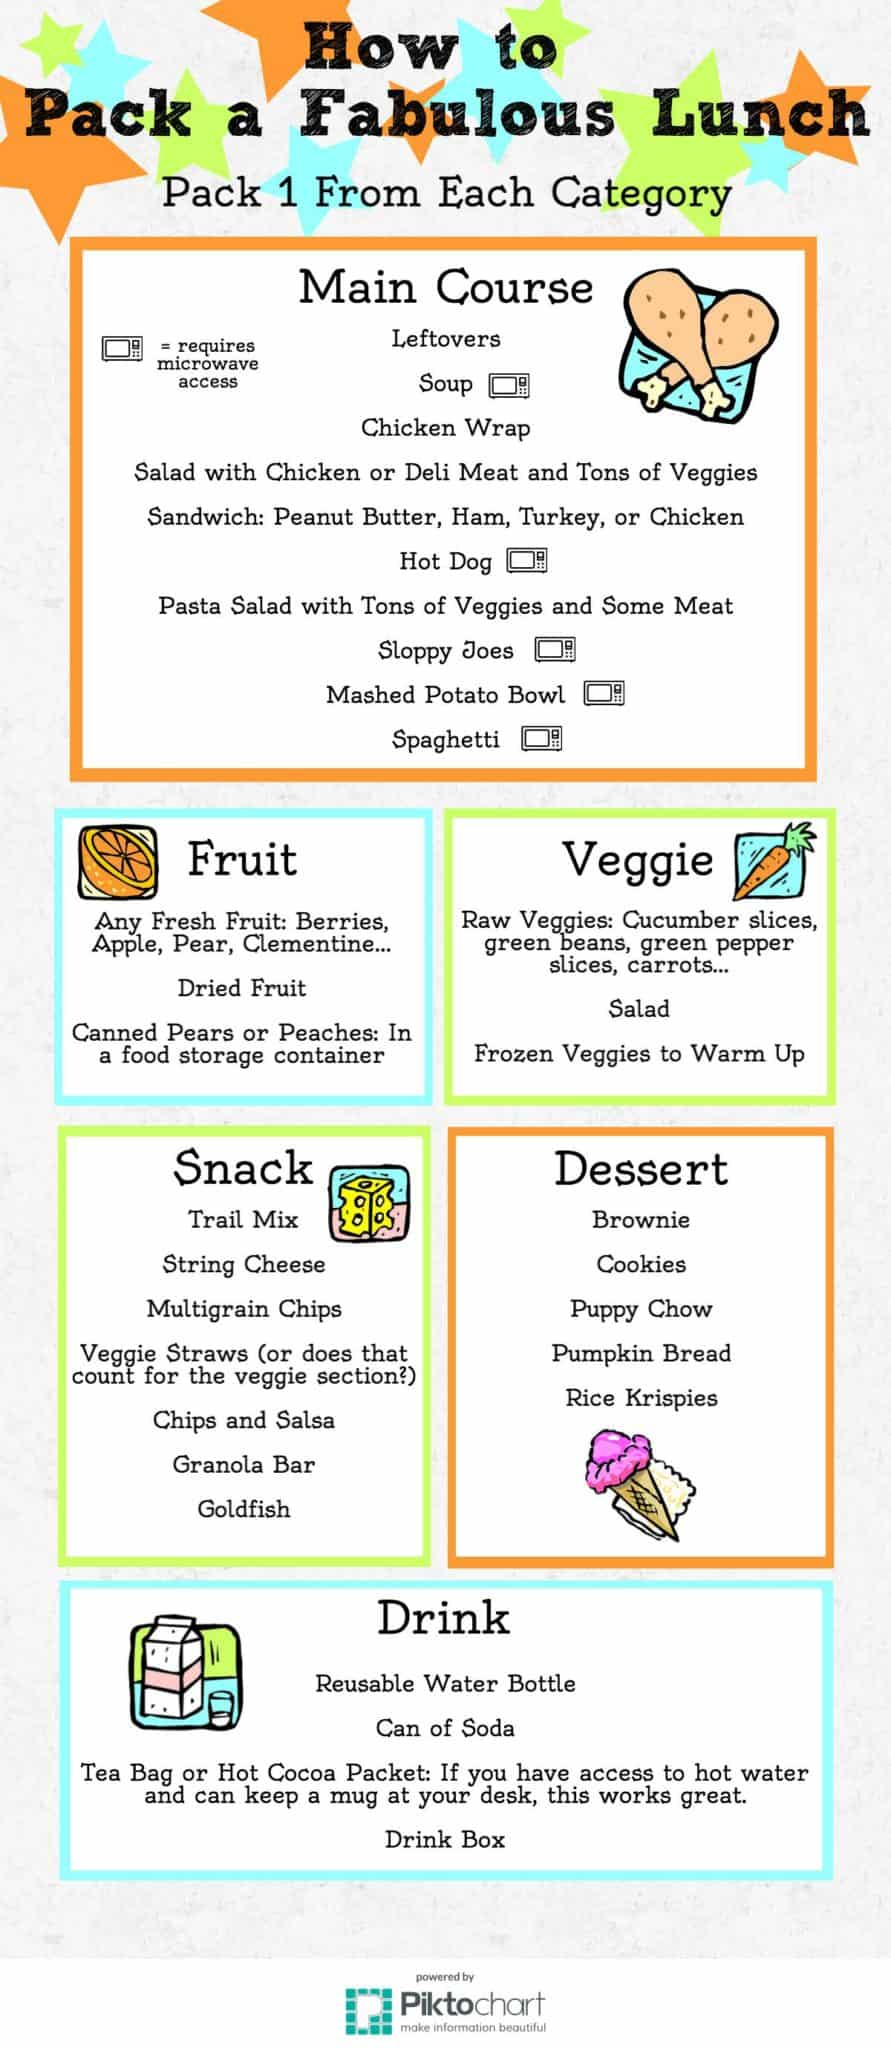 How to Pack a Fabulous Lunch: Sack lunch ideas. Great list of what to pack in a lunch. Healthy, balanced lunch. Pin now, save to look at for ideas later.